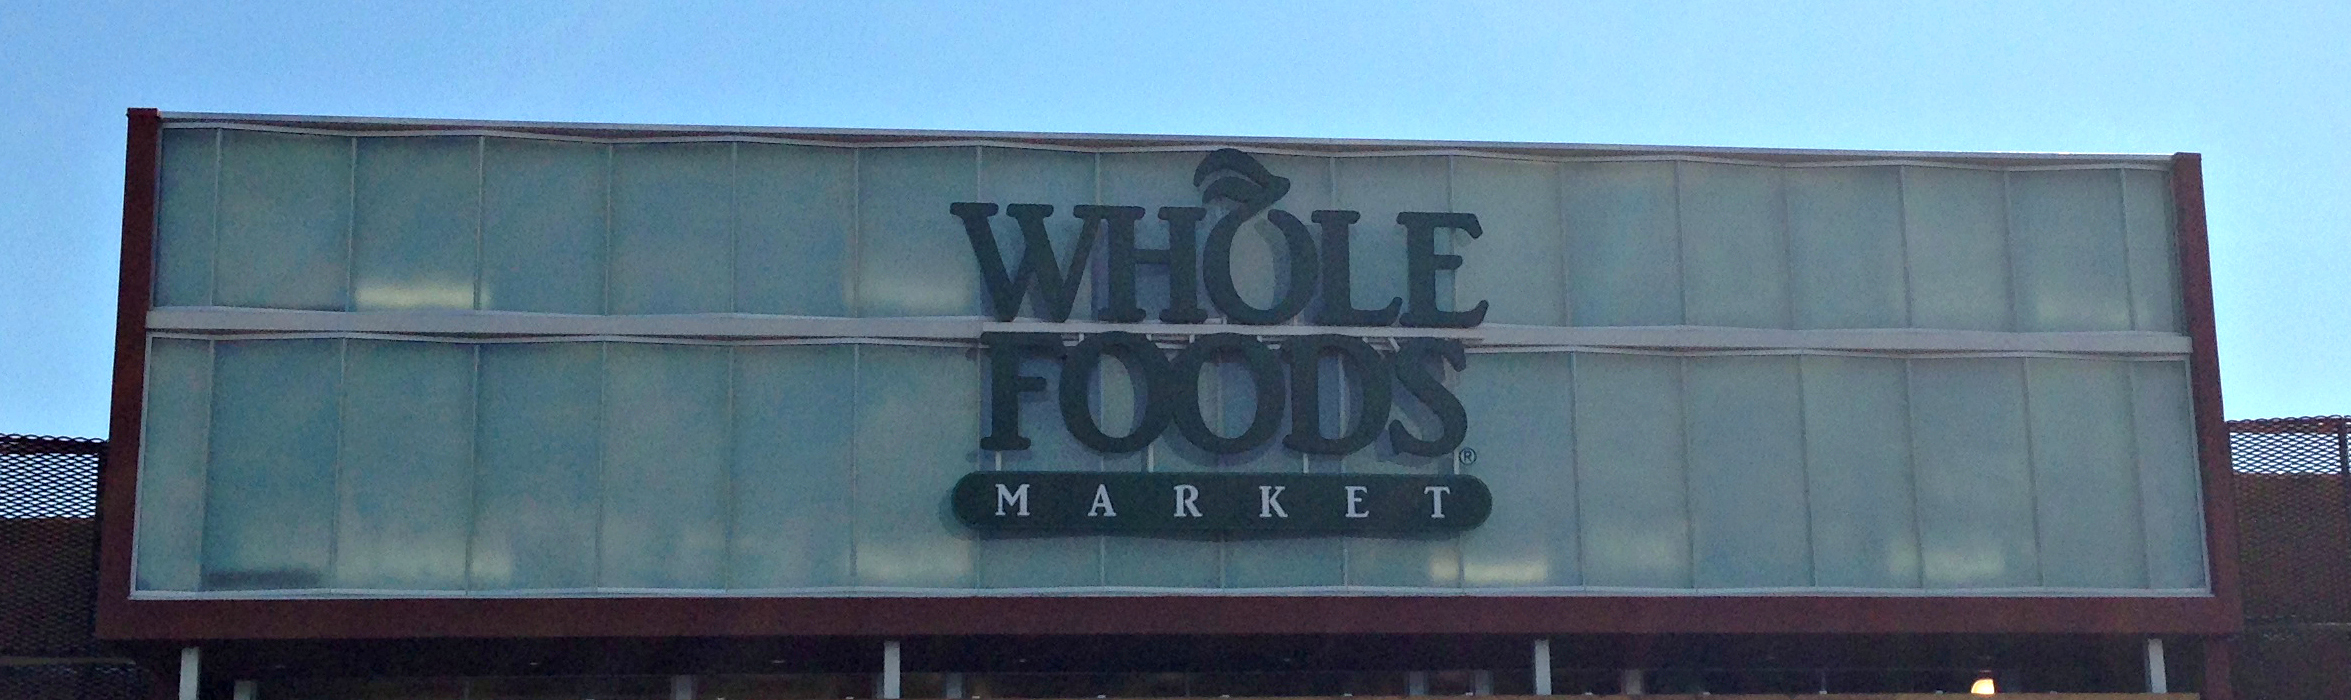 Whole Foods Market on Camelback Is Here and Enter To Win a $500 Gift Card!